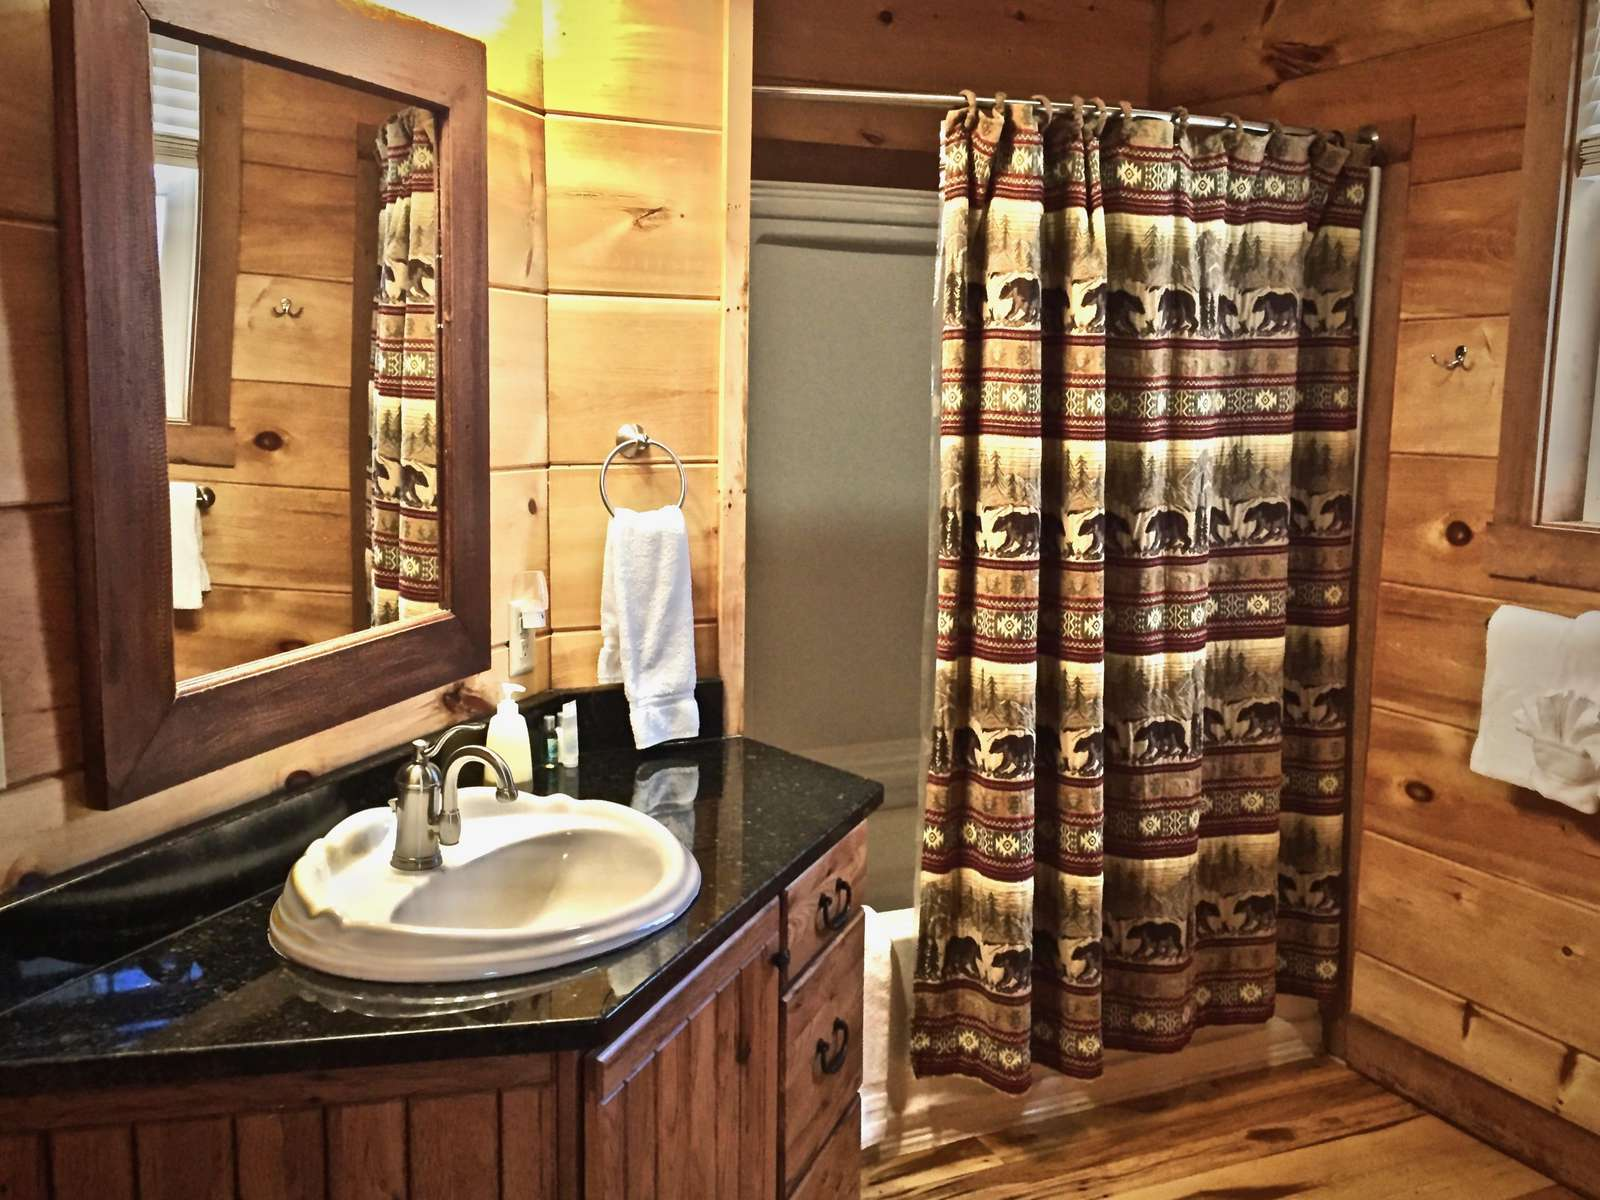 2 Full Bathrooms, One on each Level of the Cabin